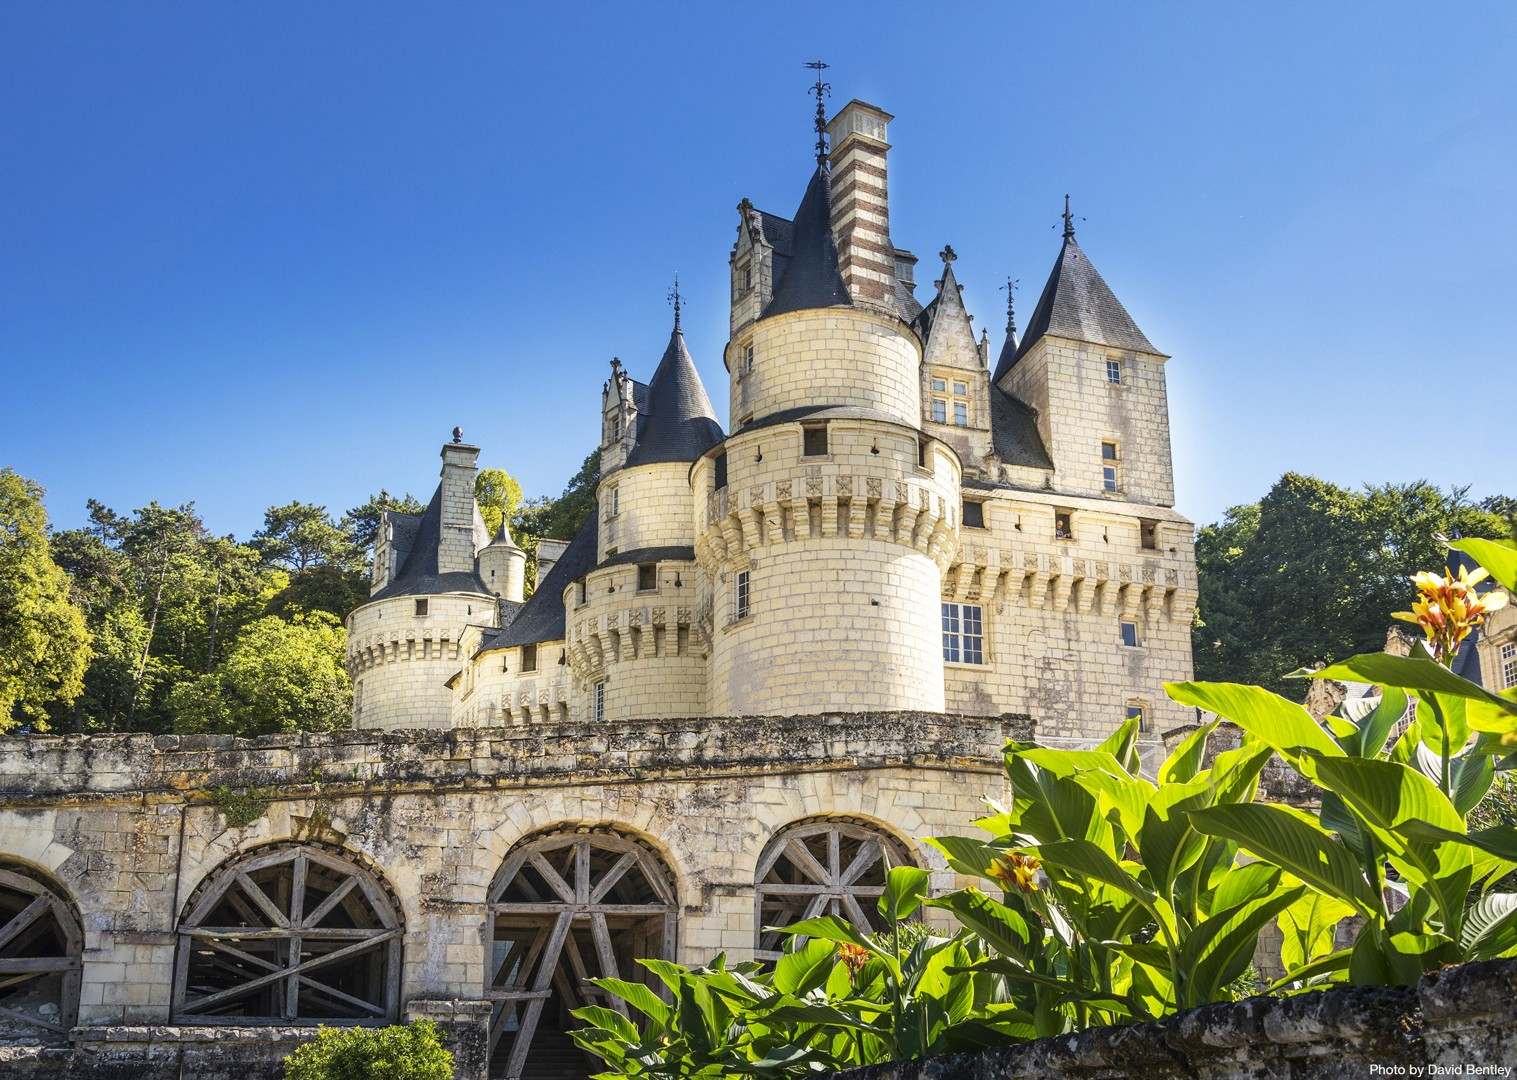 chateaux-of-the-loire-cycling-holiday.jpg - France - Chateaux of the Loire - Self-Guided Leisure Cycling Holiday - Leisure Cycling